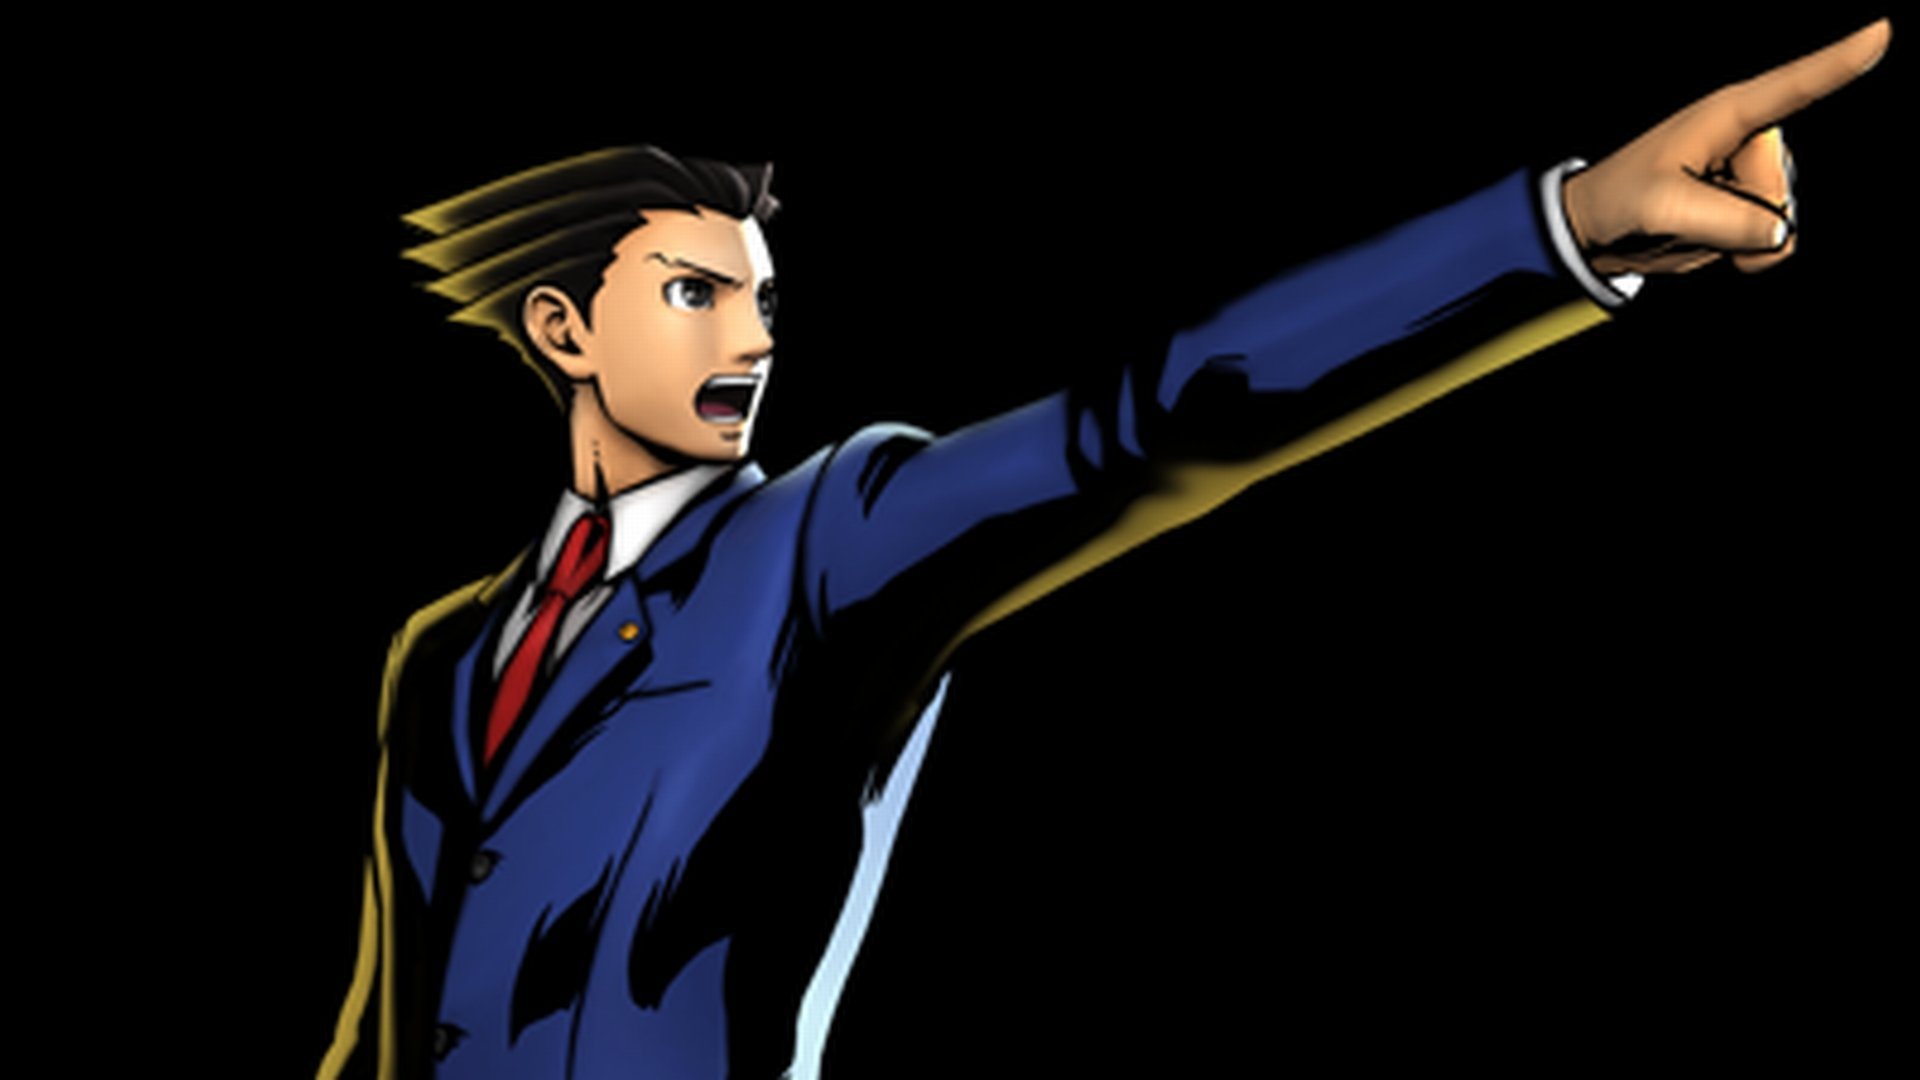 Phoenix Wright Ace Attorney Wallpapers Hd For Desktop Backgrounds